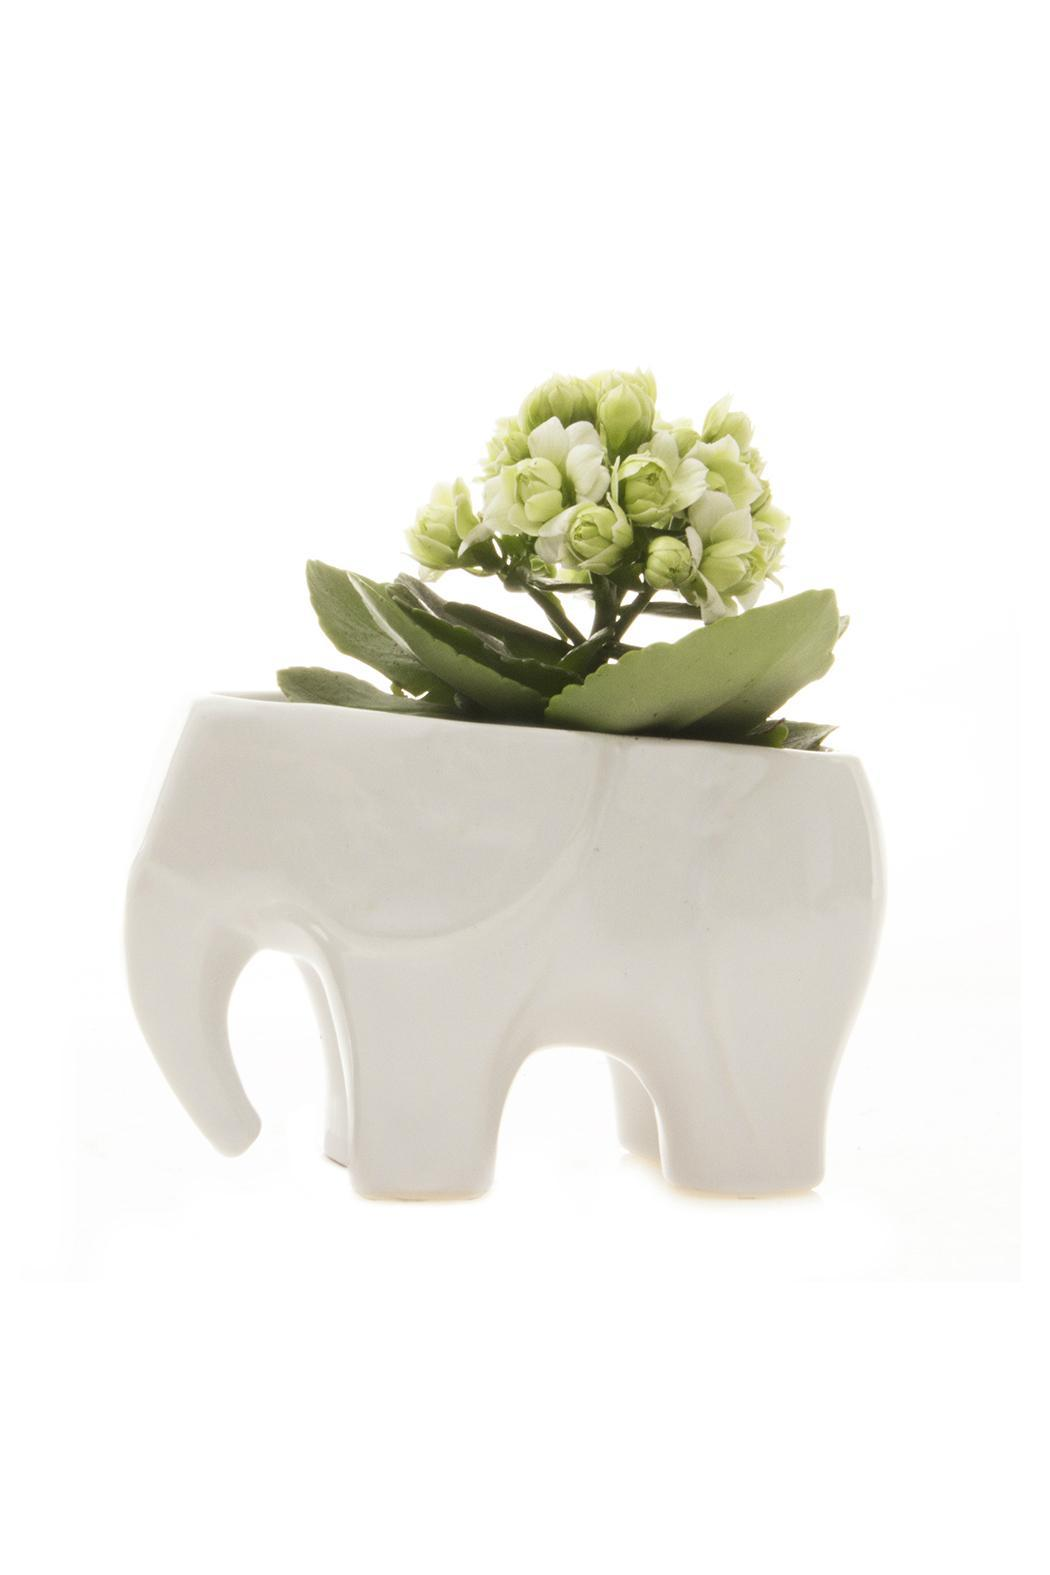 Chive Elephant Vase White From Long Island By Clarke's